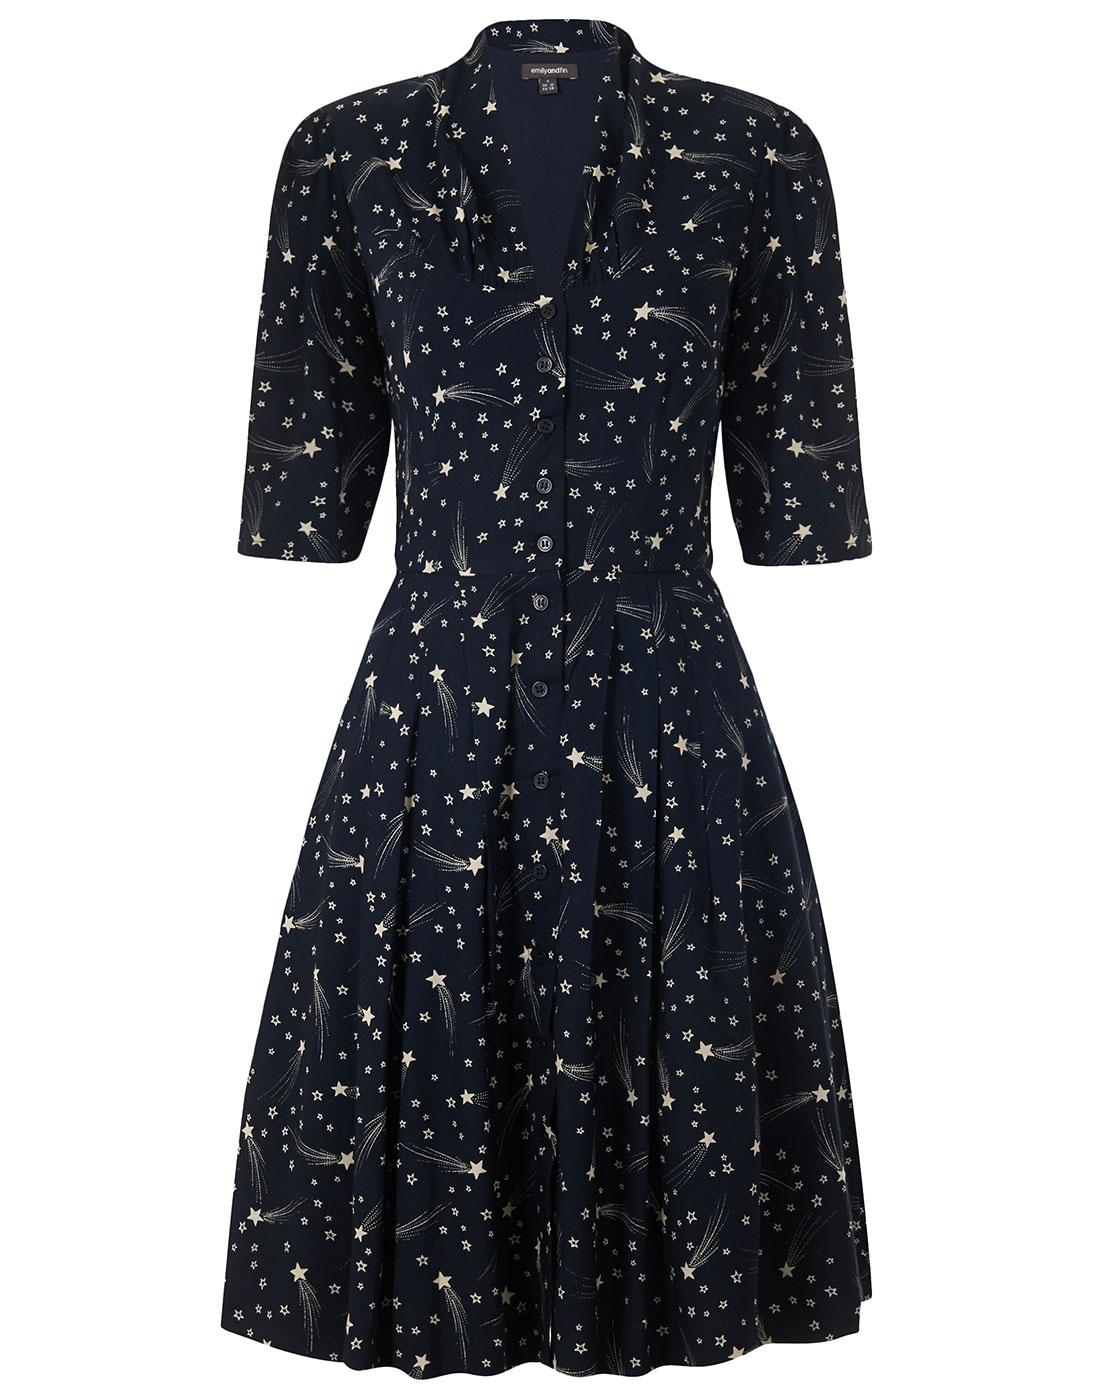 Rose EMILY AND FIN Midnight Shooting Star Dress